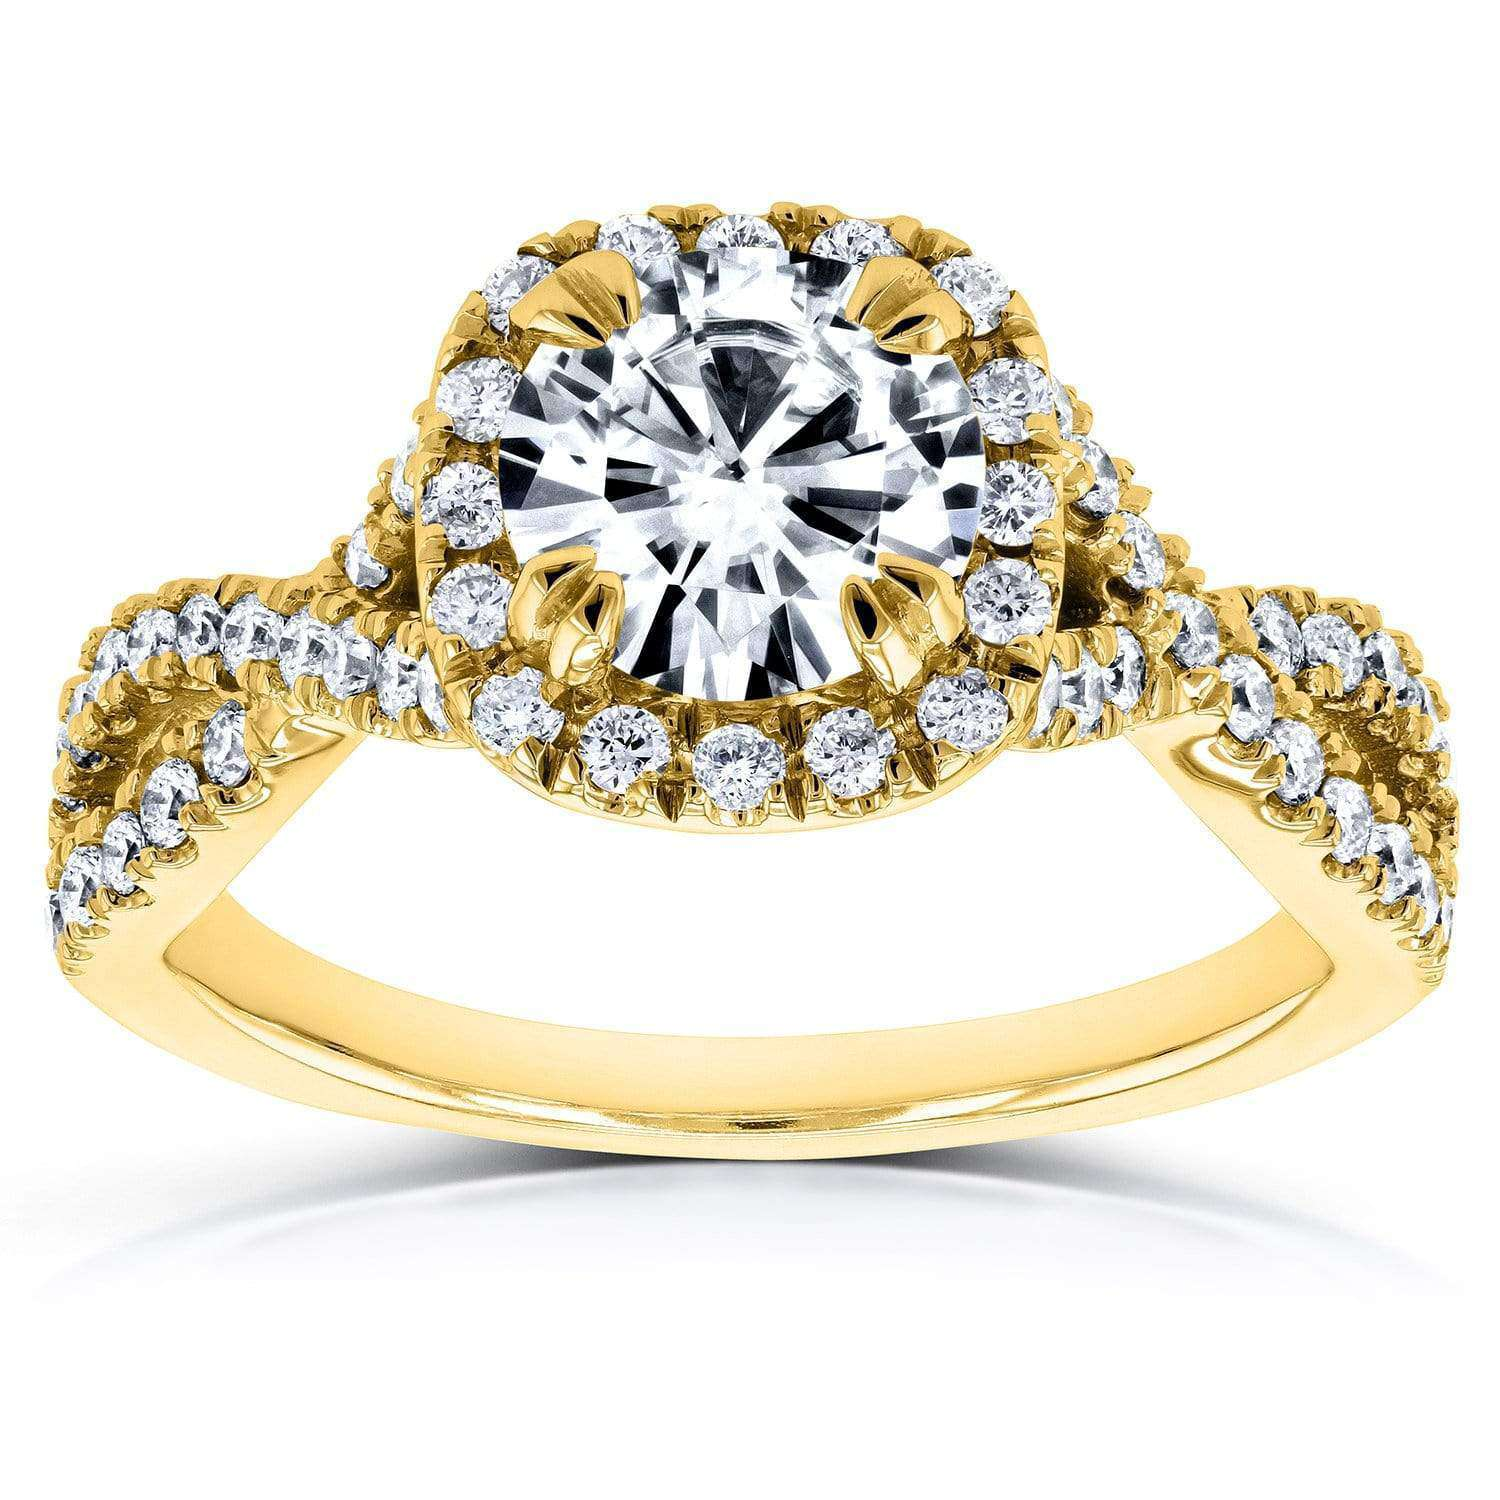 Top Forever One (D-F) Moissanite Engagement Ring and Diamond 1 1/2 CTW 14k Yellow Gold - 6.5